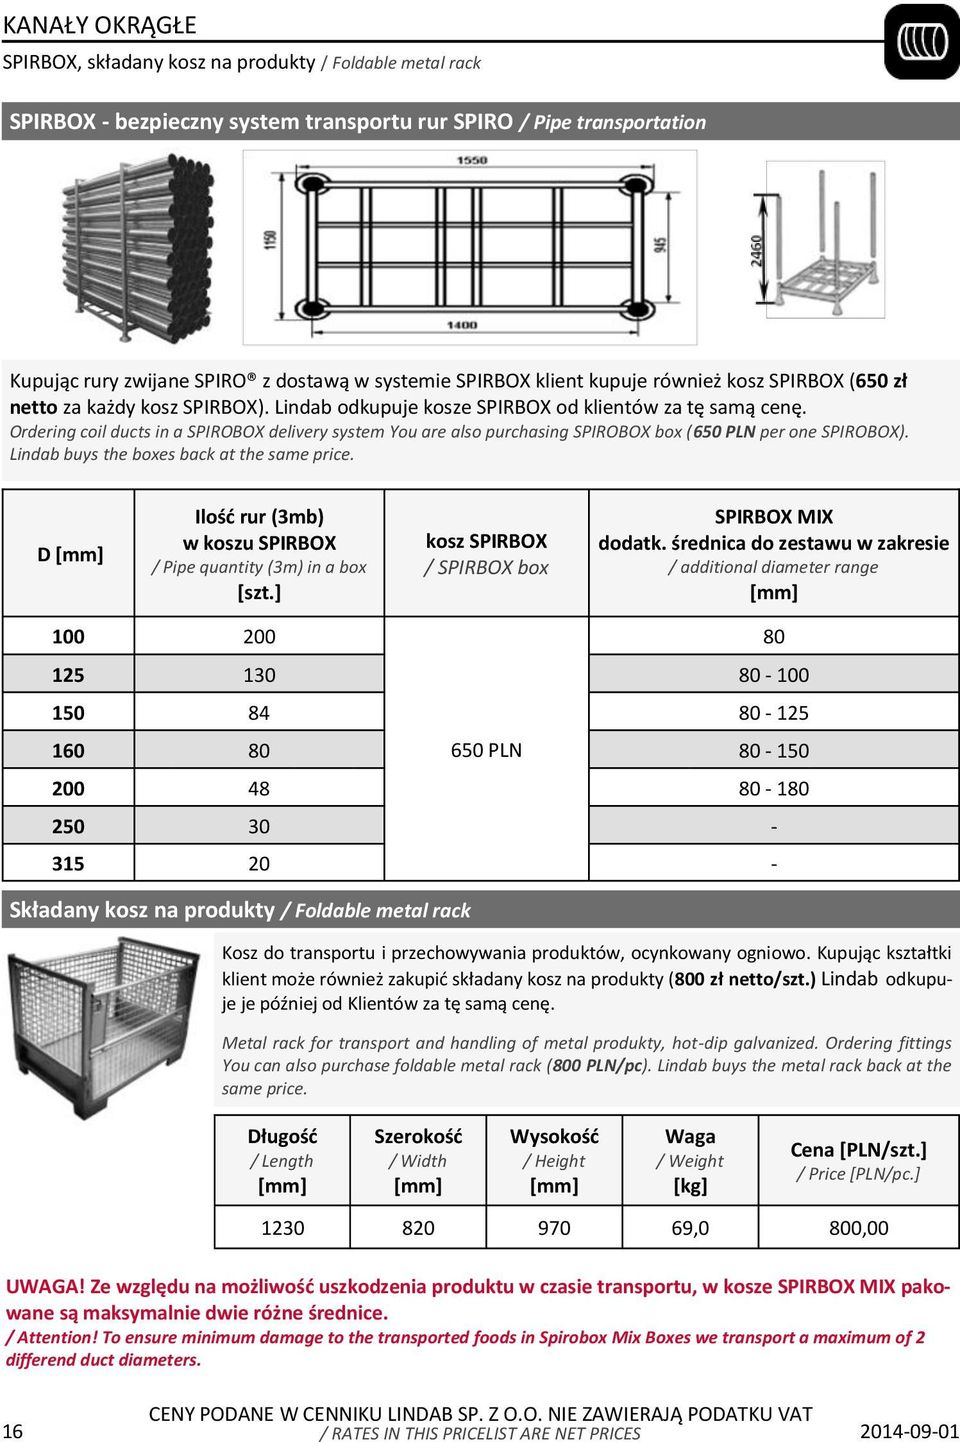 Ordering coil ducts in a SPIROBOX delivery system You are also purchasing SPIROBOX box (650 PLN per one SPIROBOX). Lindab buys the boxes back at the same price.